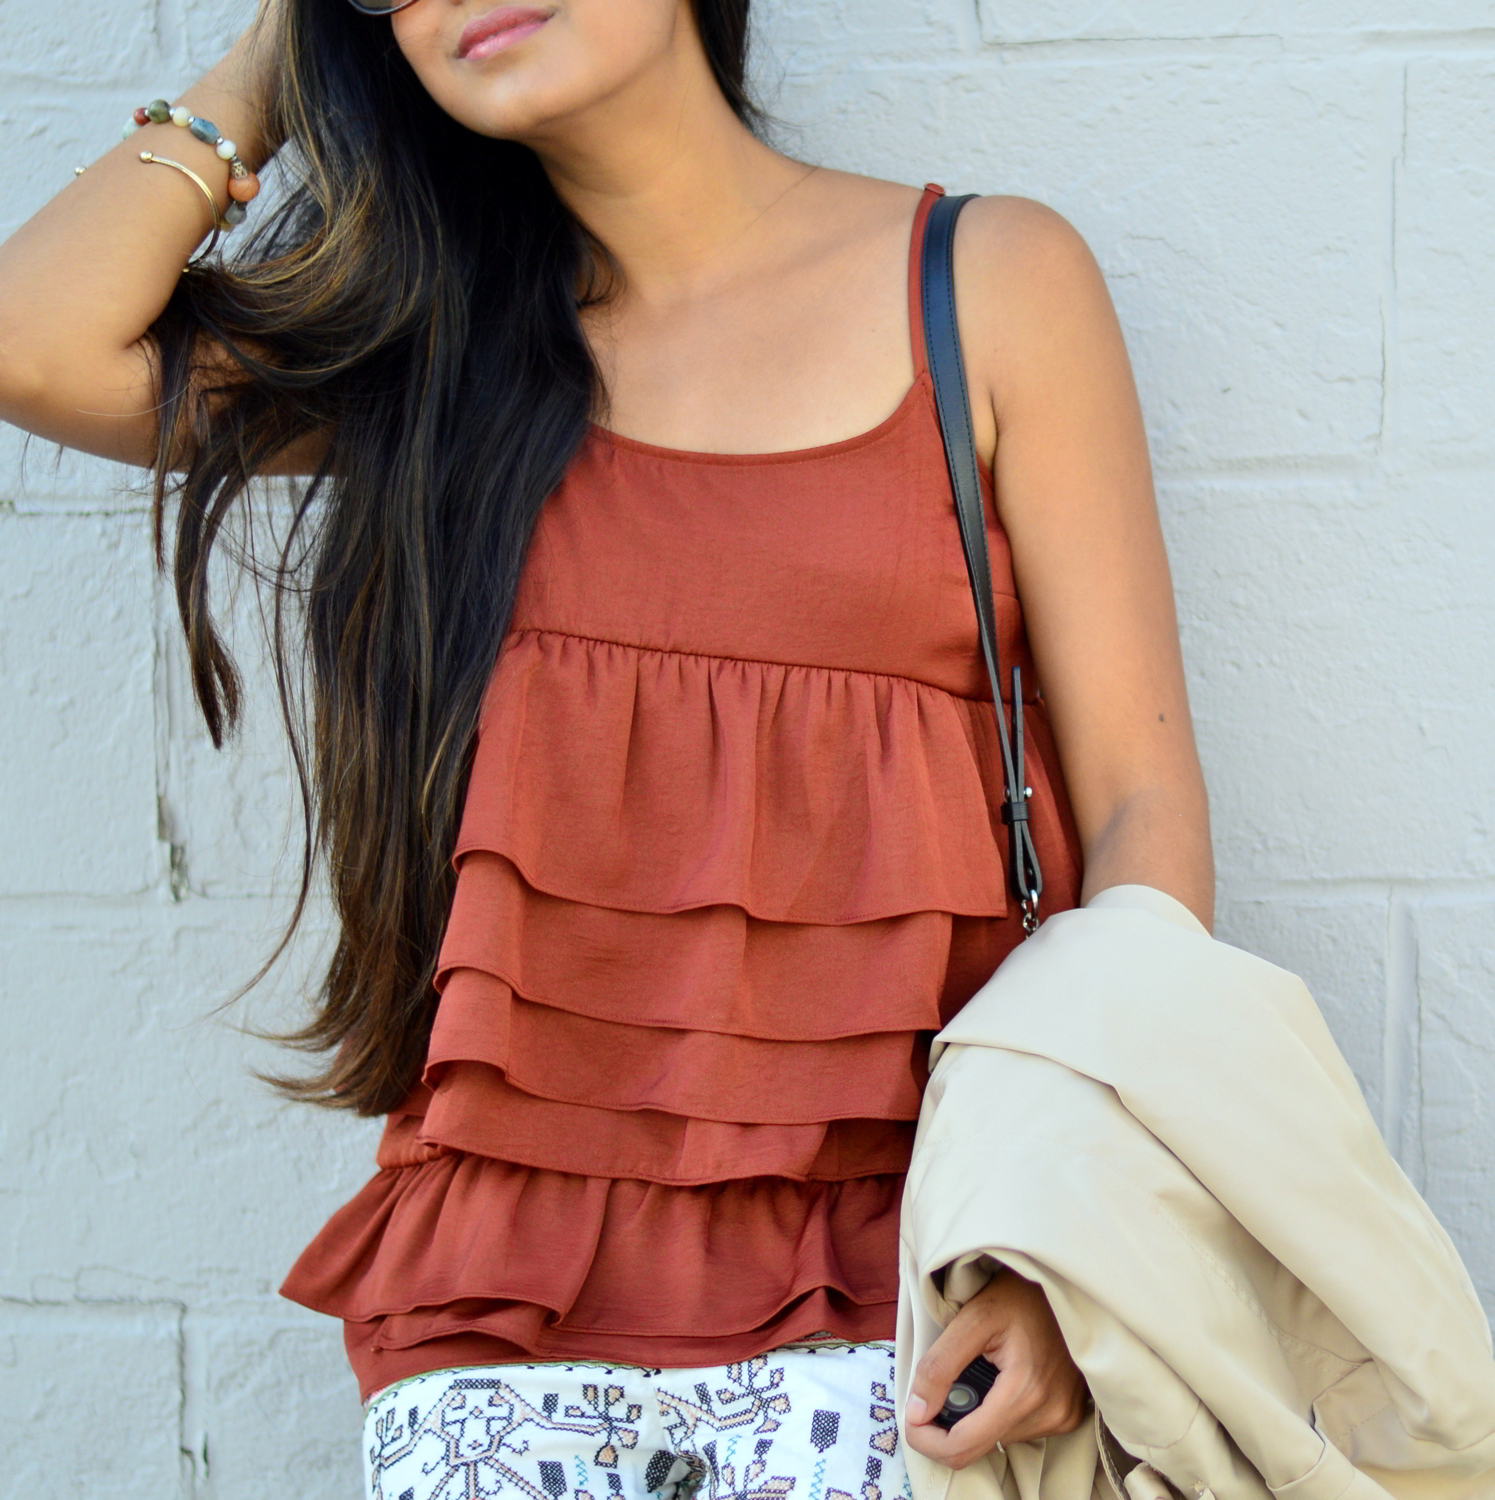 ruffles-embroidered-shorts-summer-style-fall-trends-blogger-outfit 4